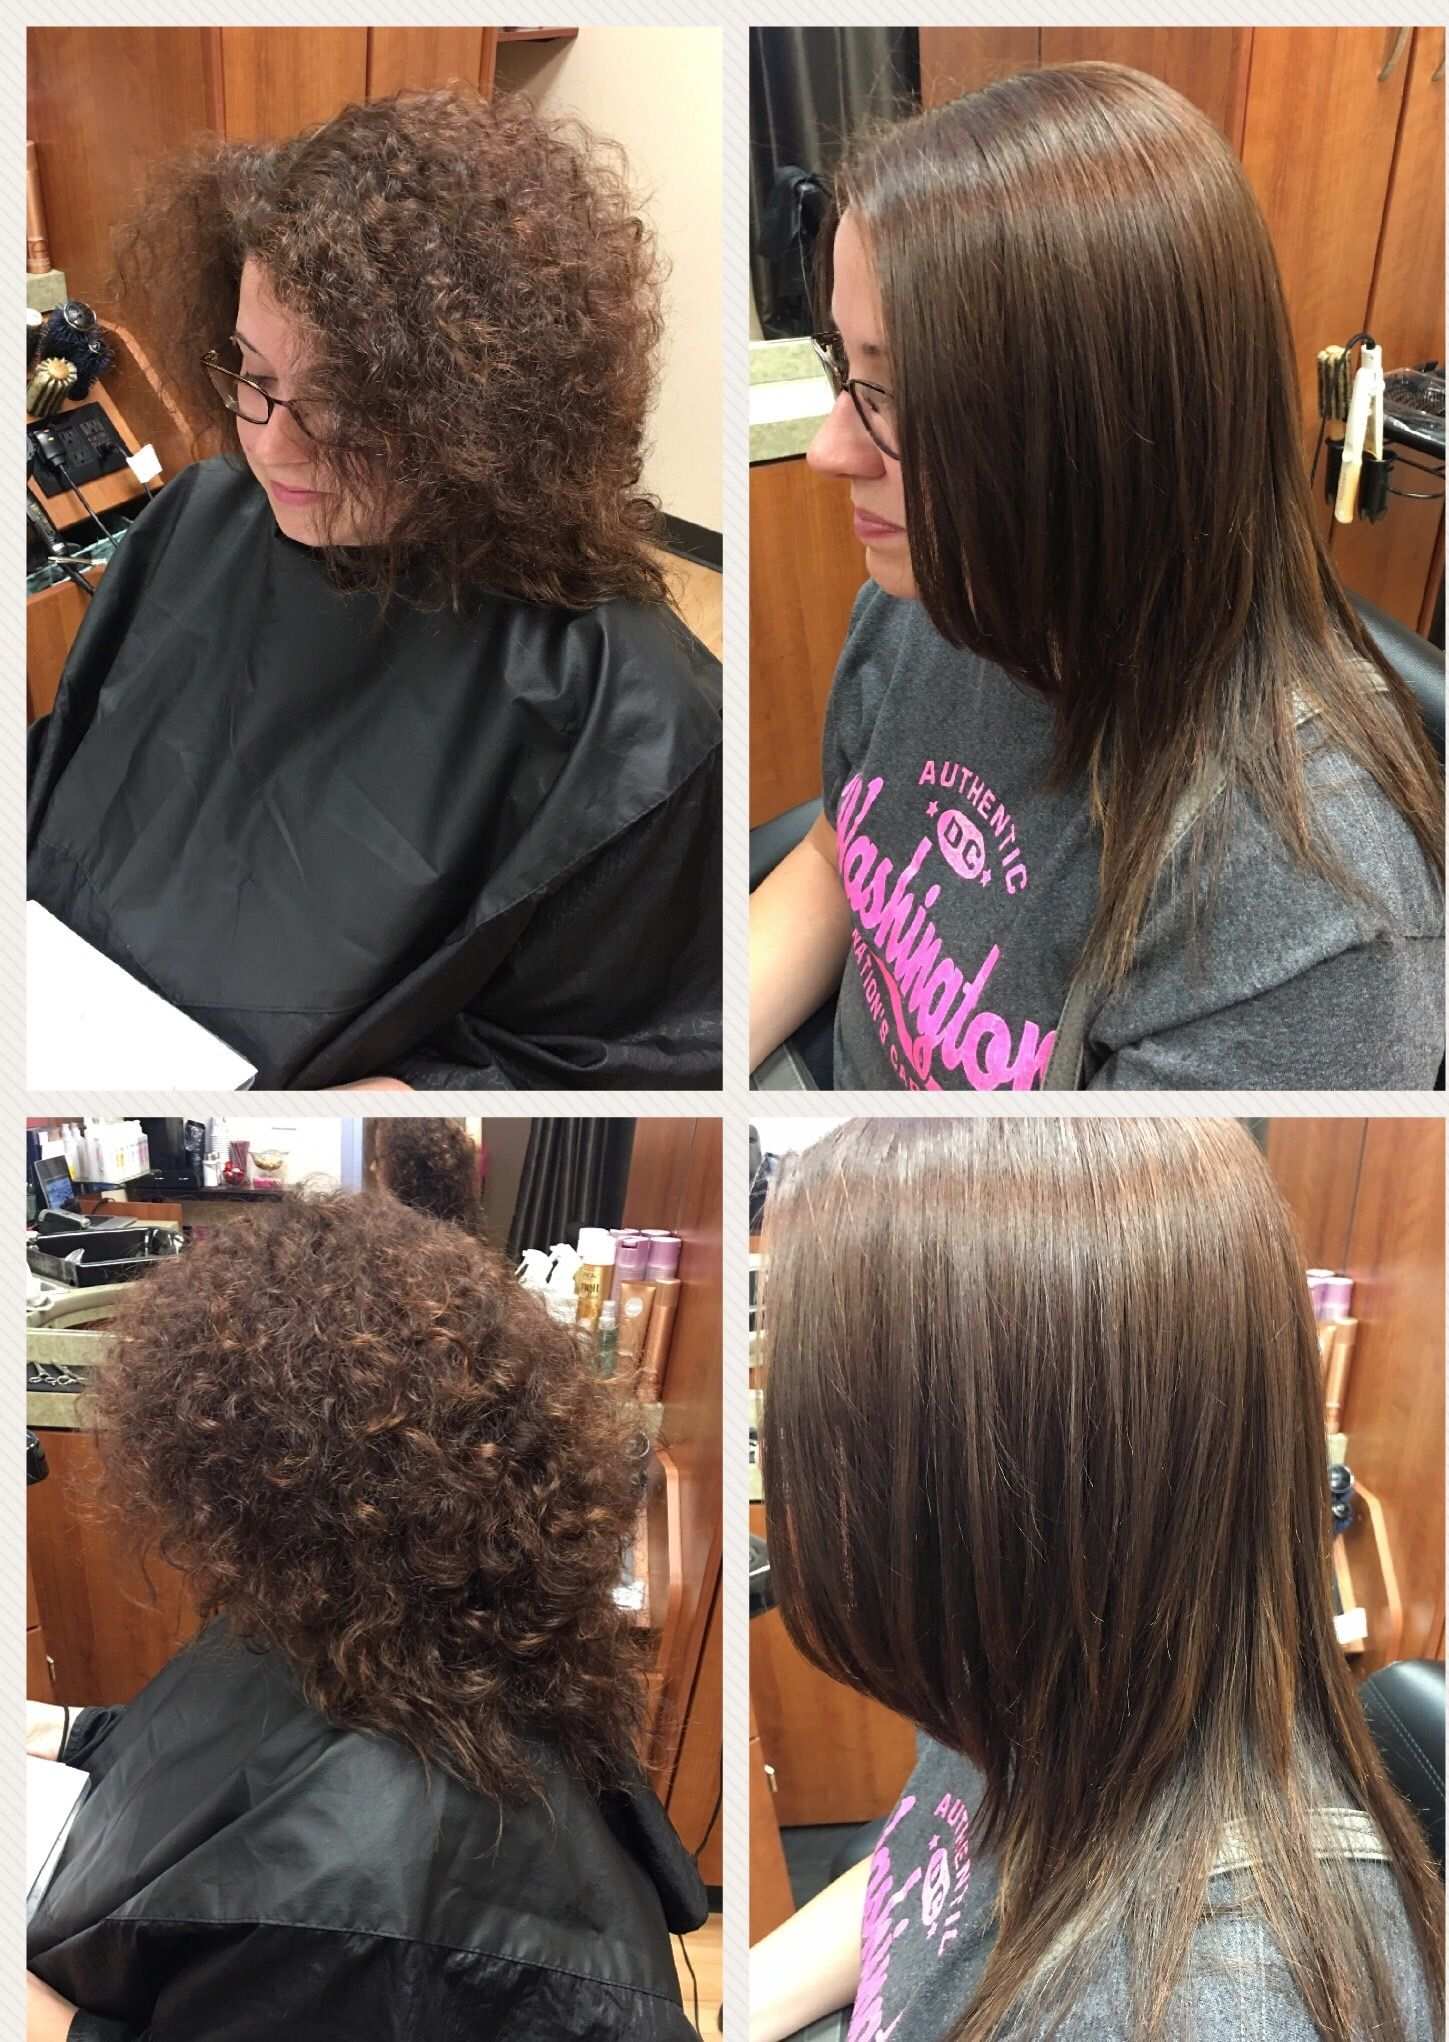 Straight perm solution - Before And After Japanese Hair Straightening Treatment Great Solution For Frizzy Hair Call For